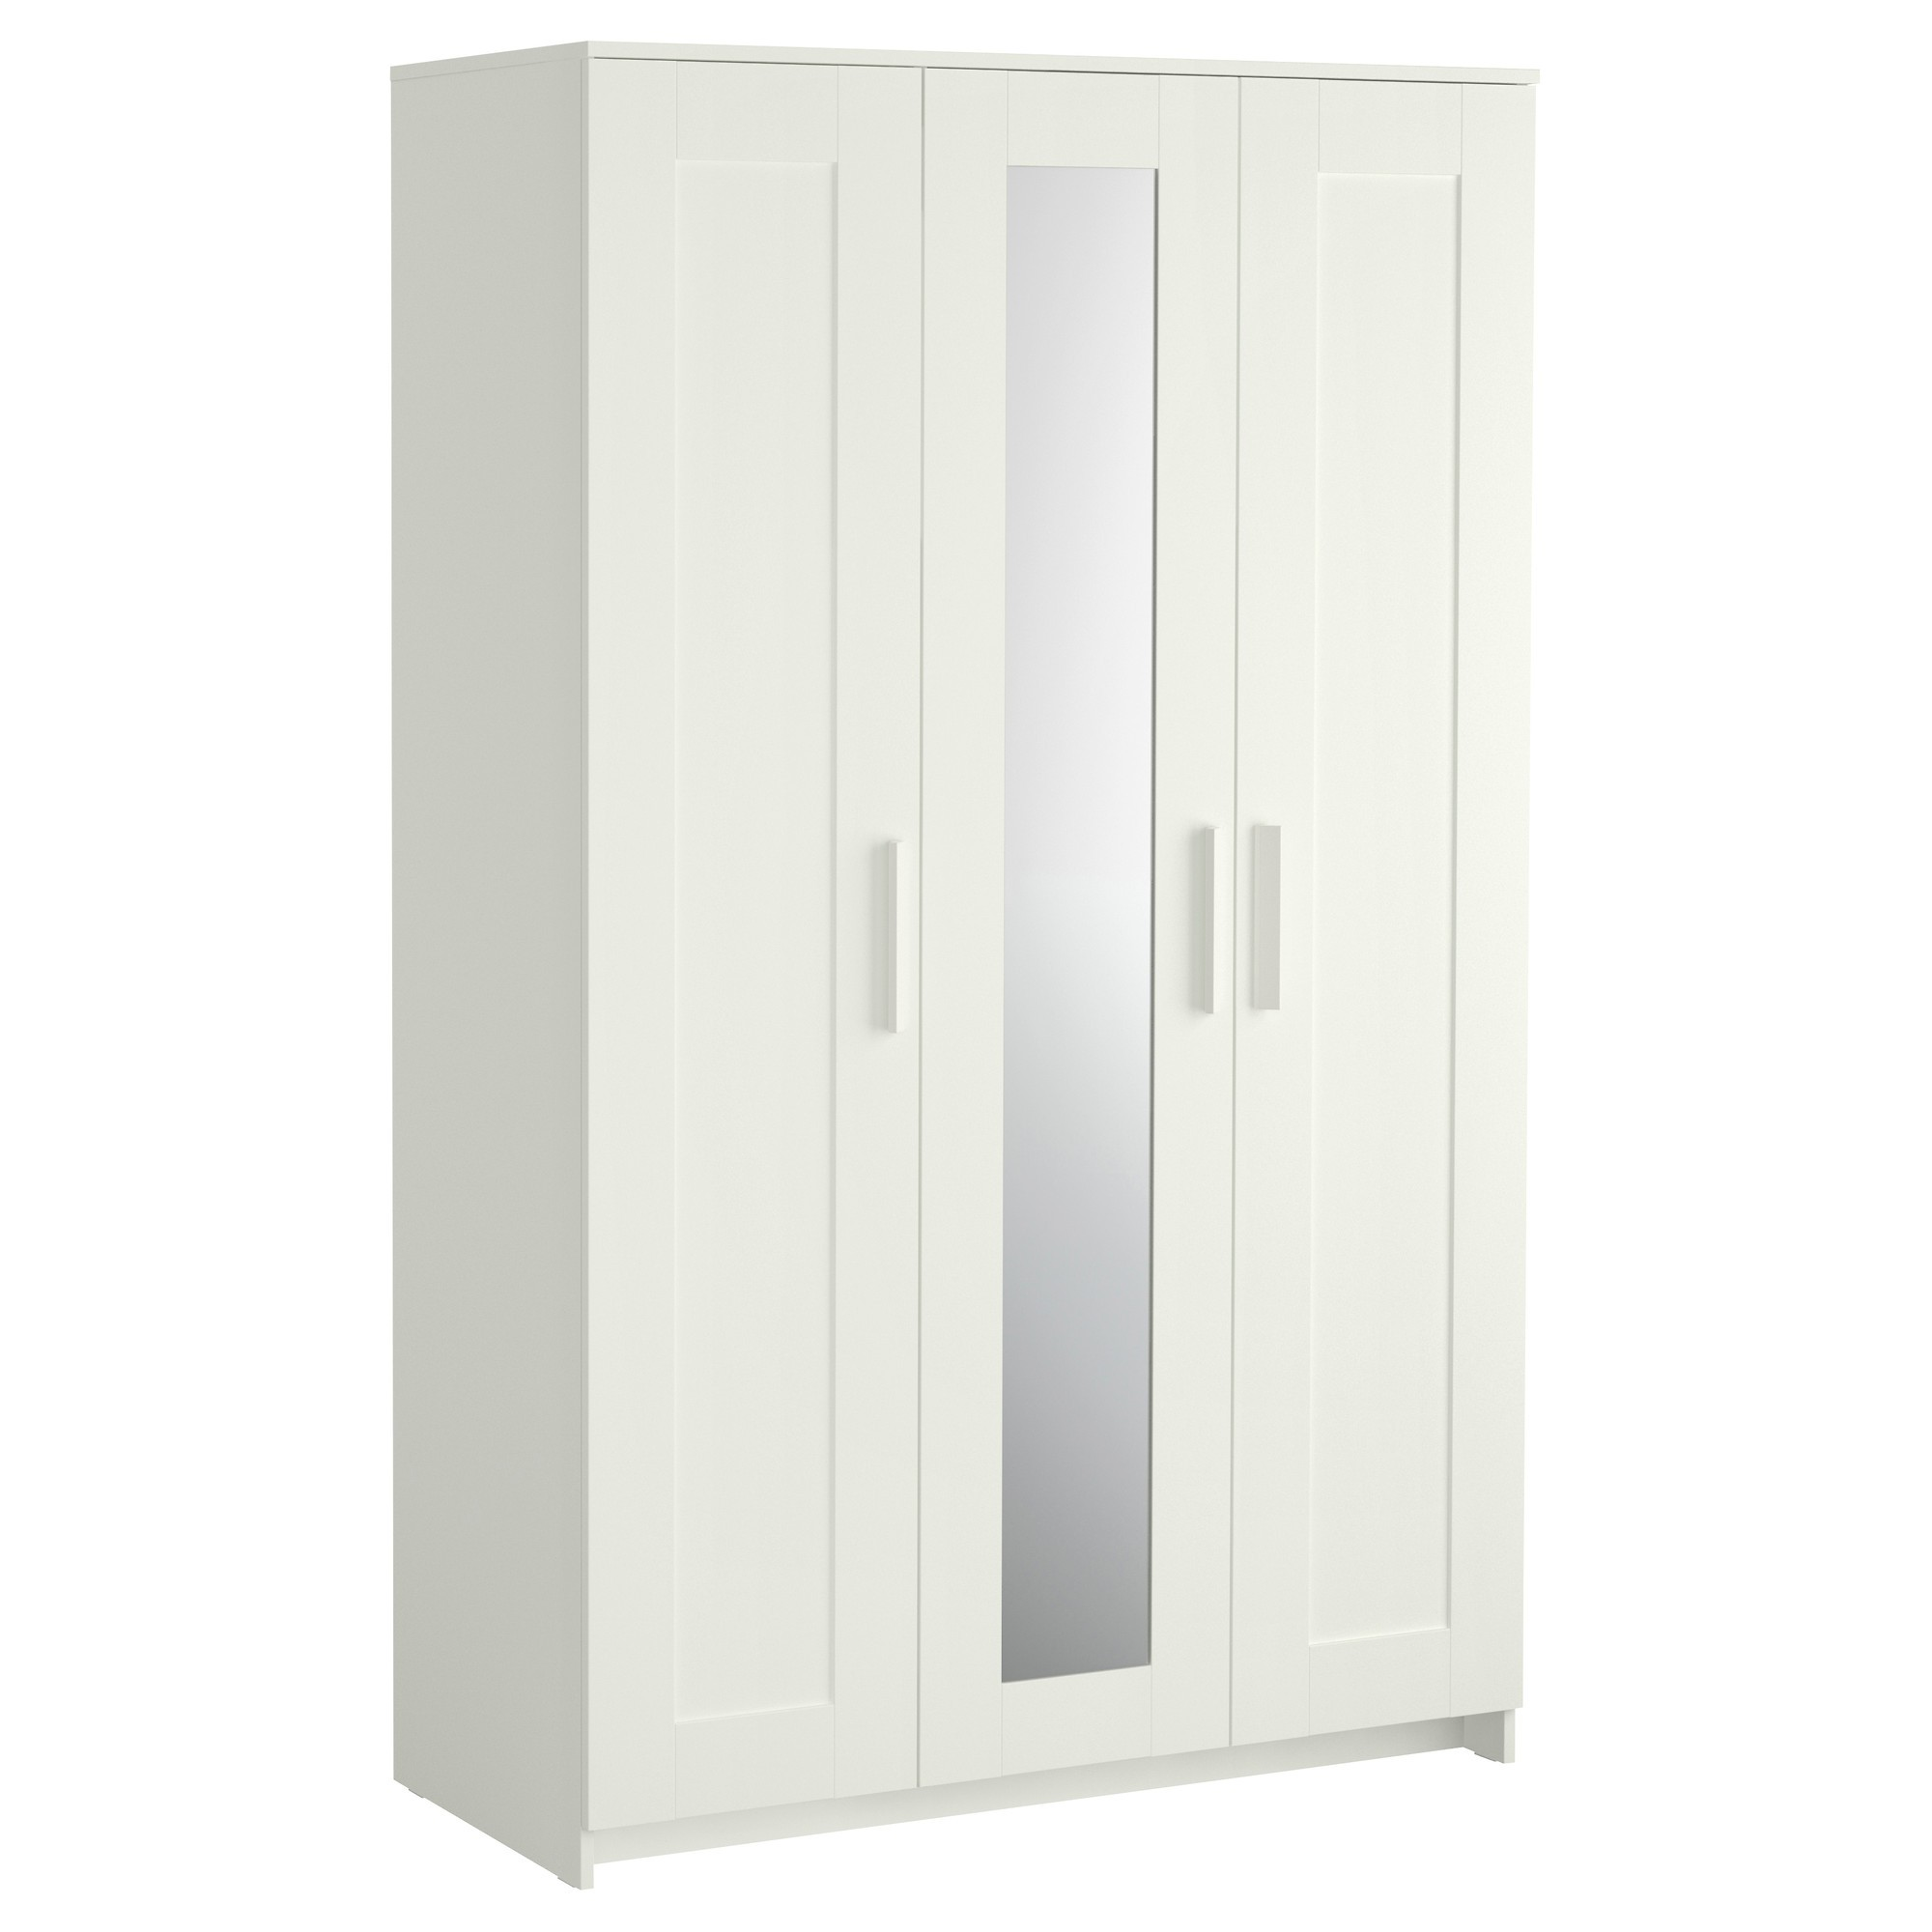 armoire penderie 3 portes ikea armoire id es de d coration de maison 6kdaxg5lvm. Black Bedroom Furniture Sets. Home Design Ideas